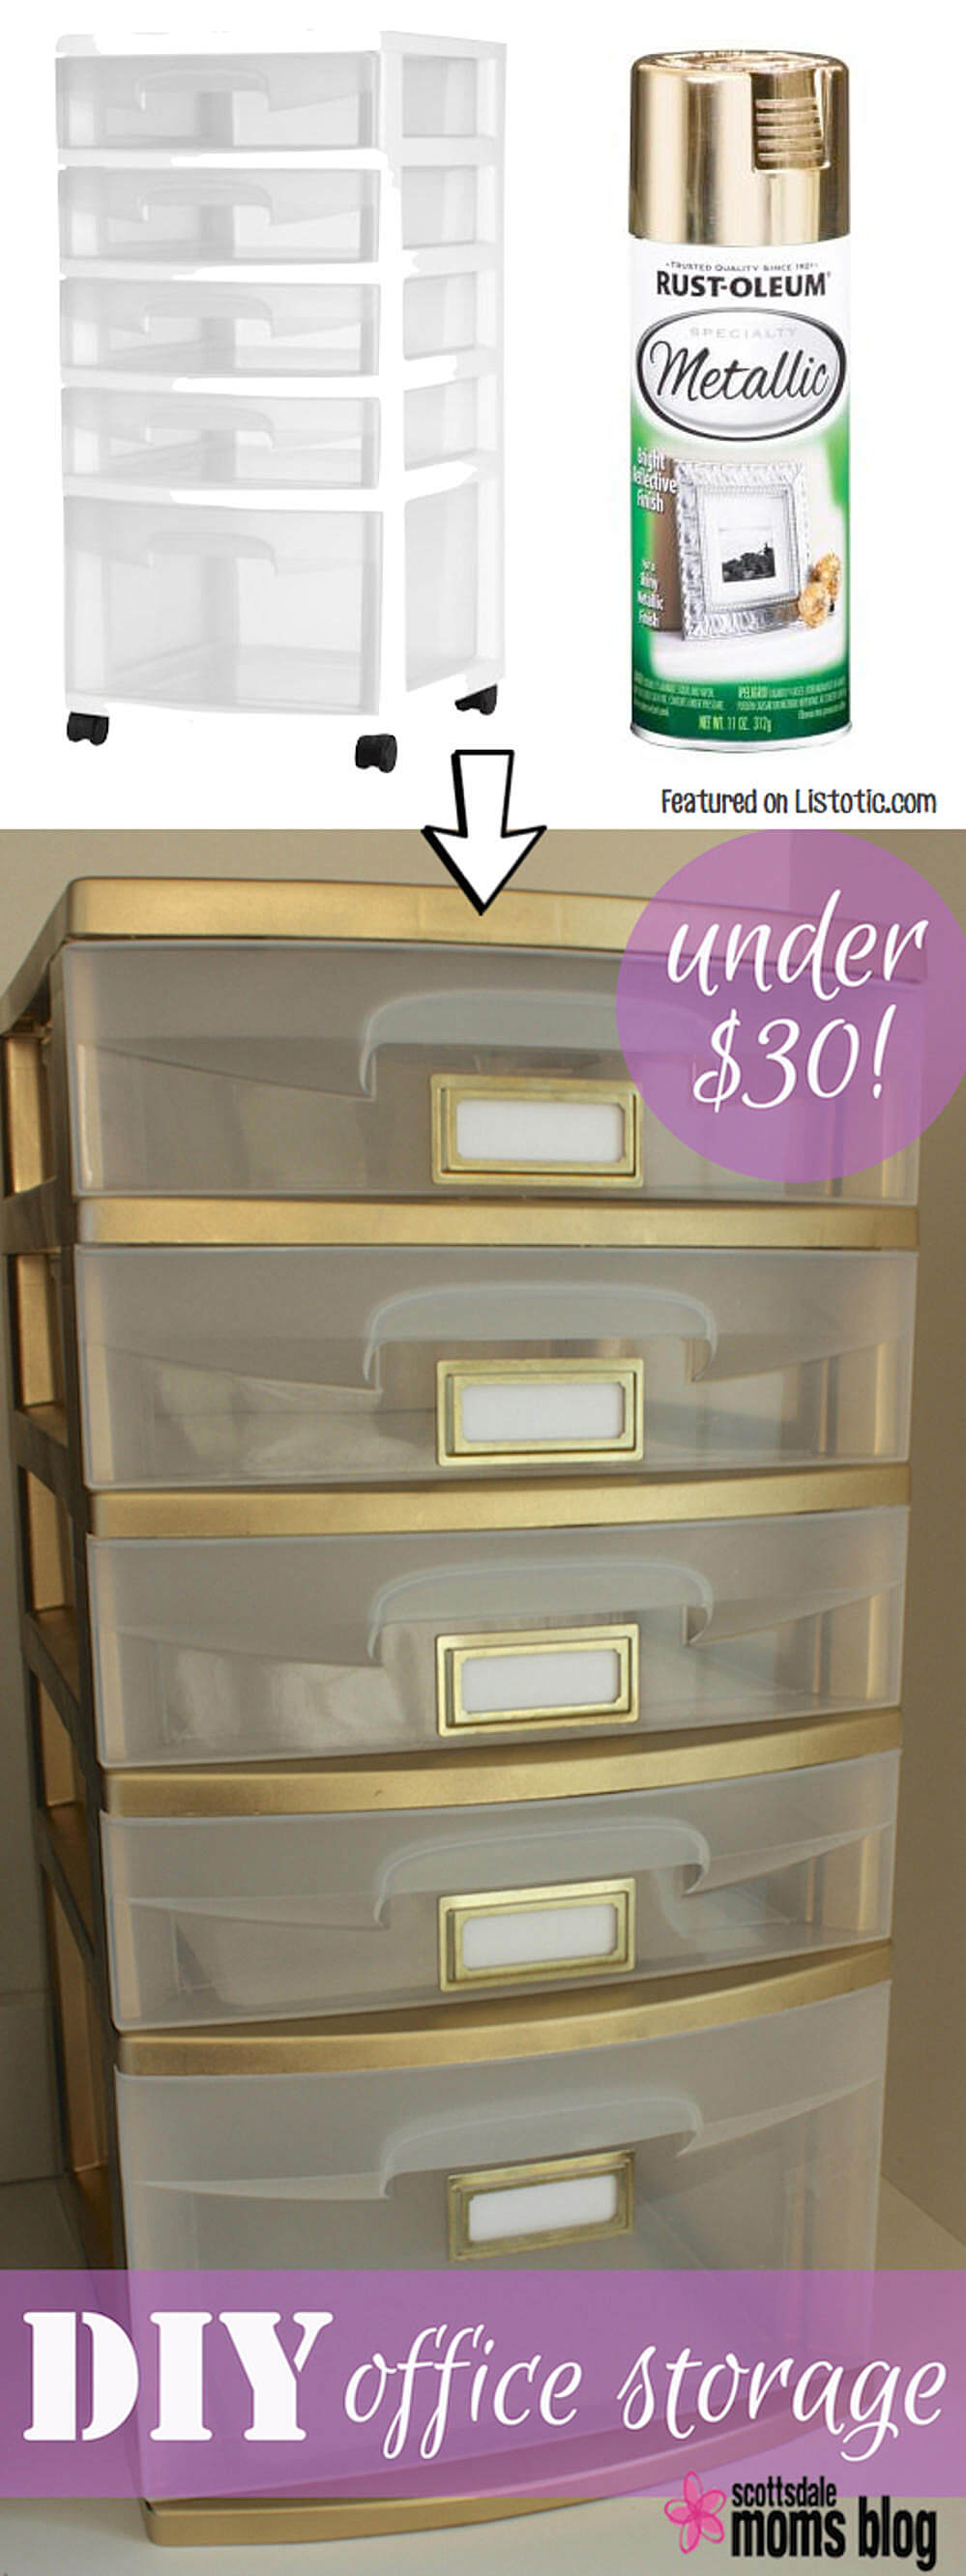 Gold Trimmed Storage Space for Your Home Office